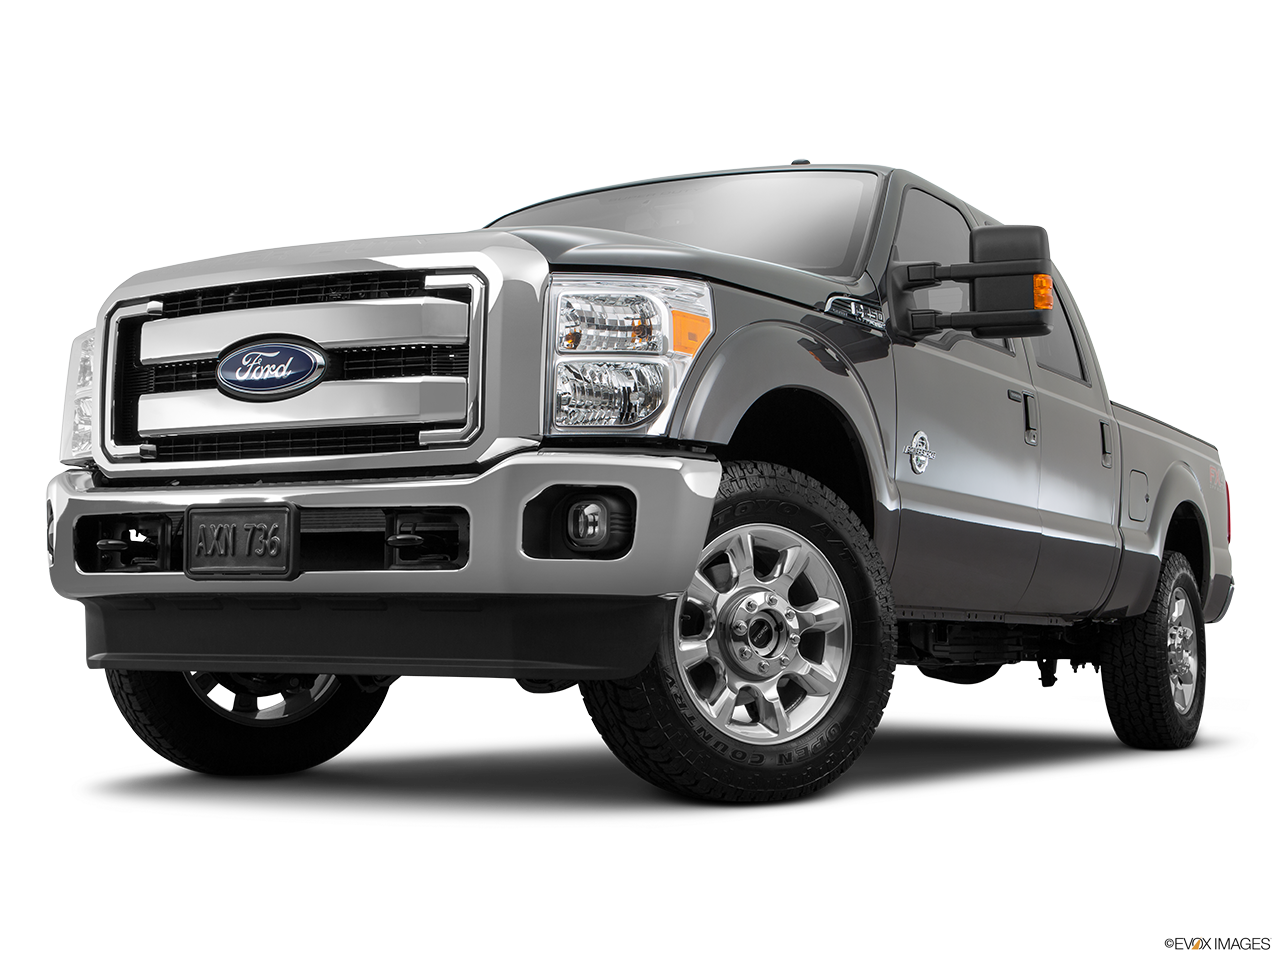 Car duty clipart svg free download Ford Super Duty Ford F-Series Car 2015 Ford F-250 - Diesel truck png ... svg free download